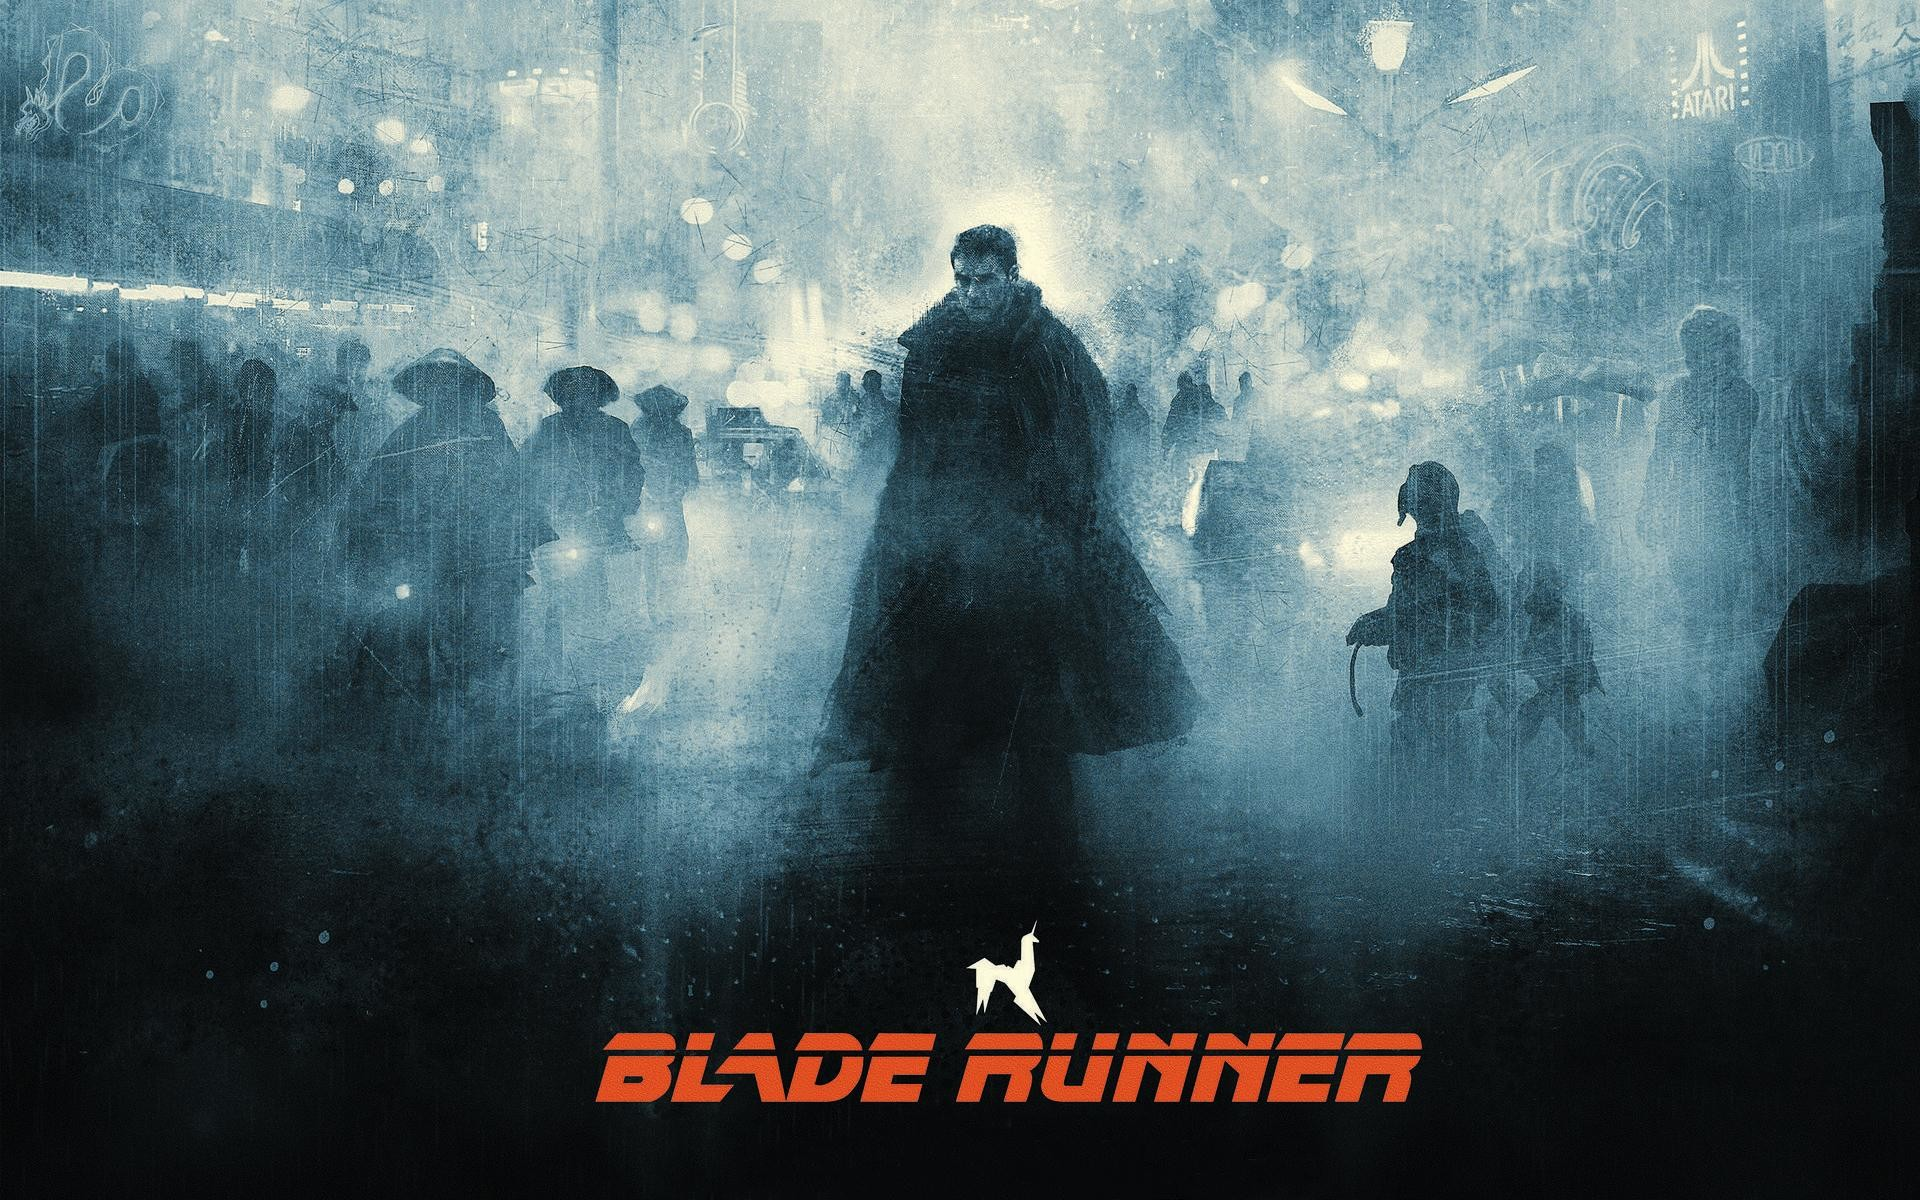 Poster by Karl Fitzgerald – Blade Runner